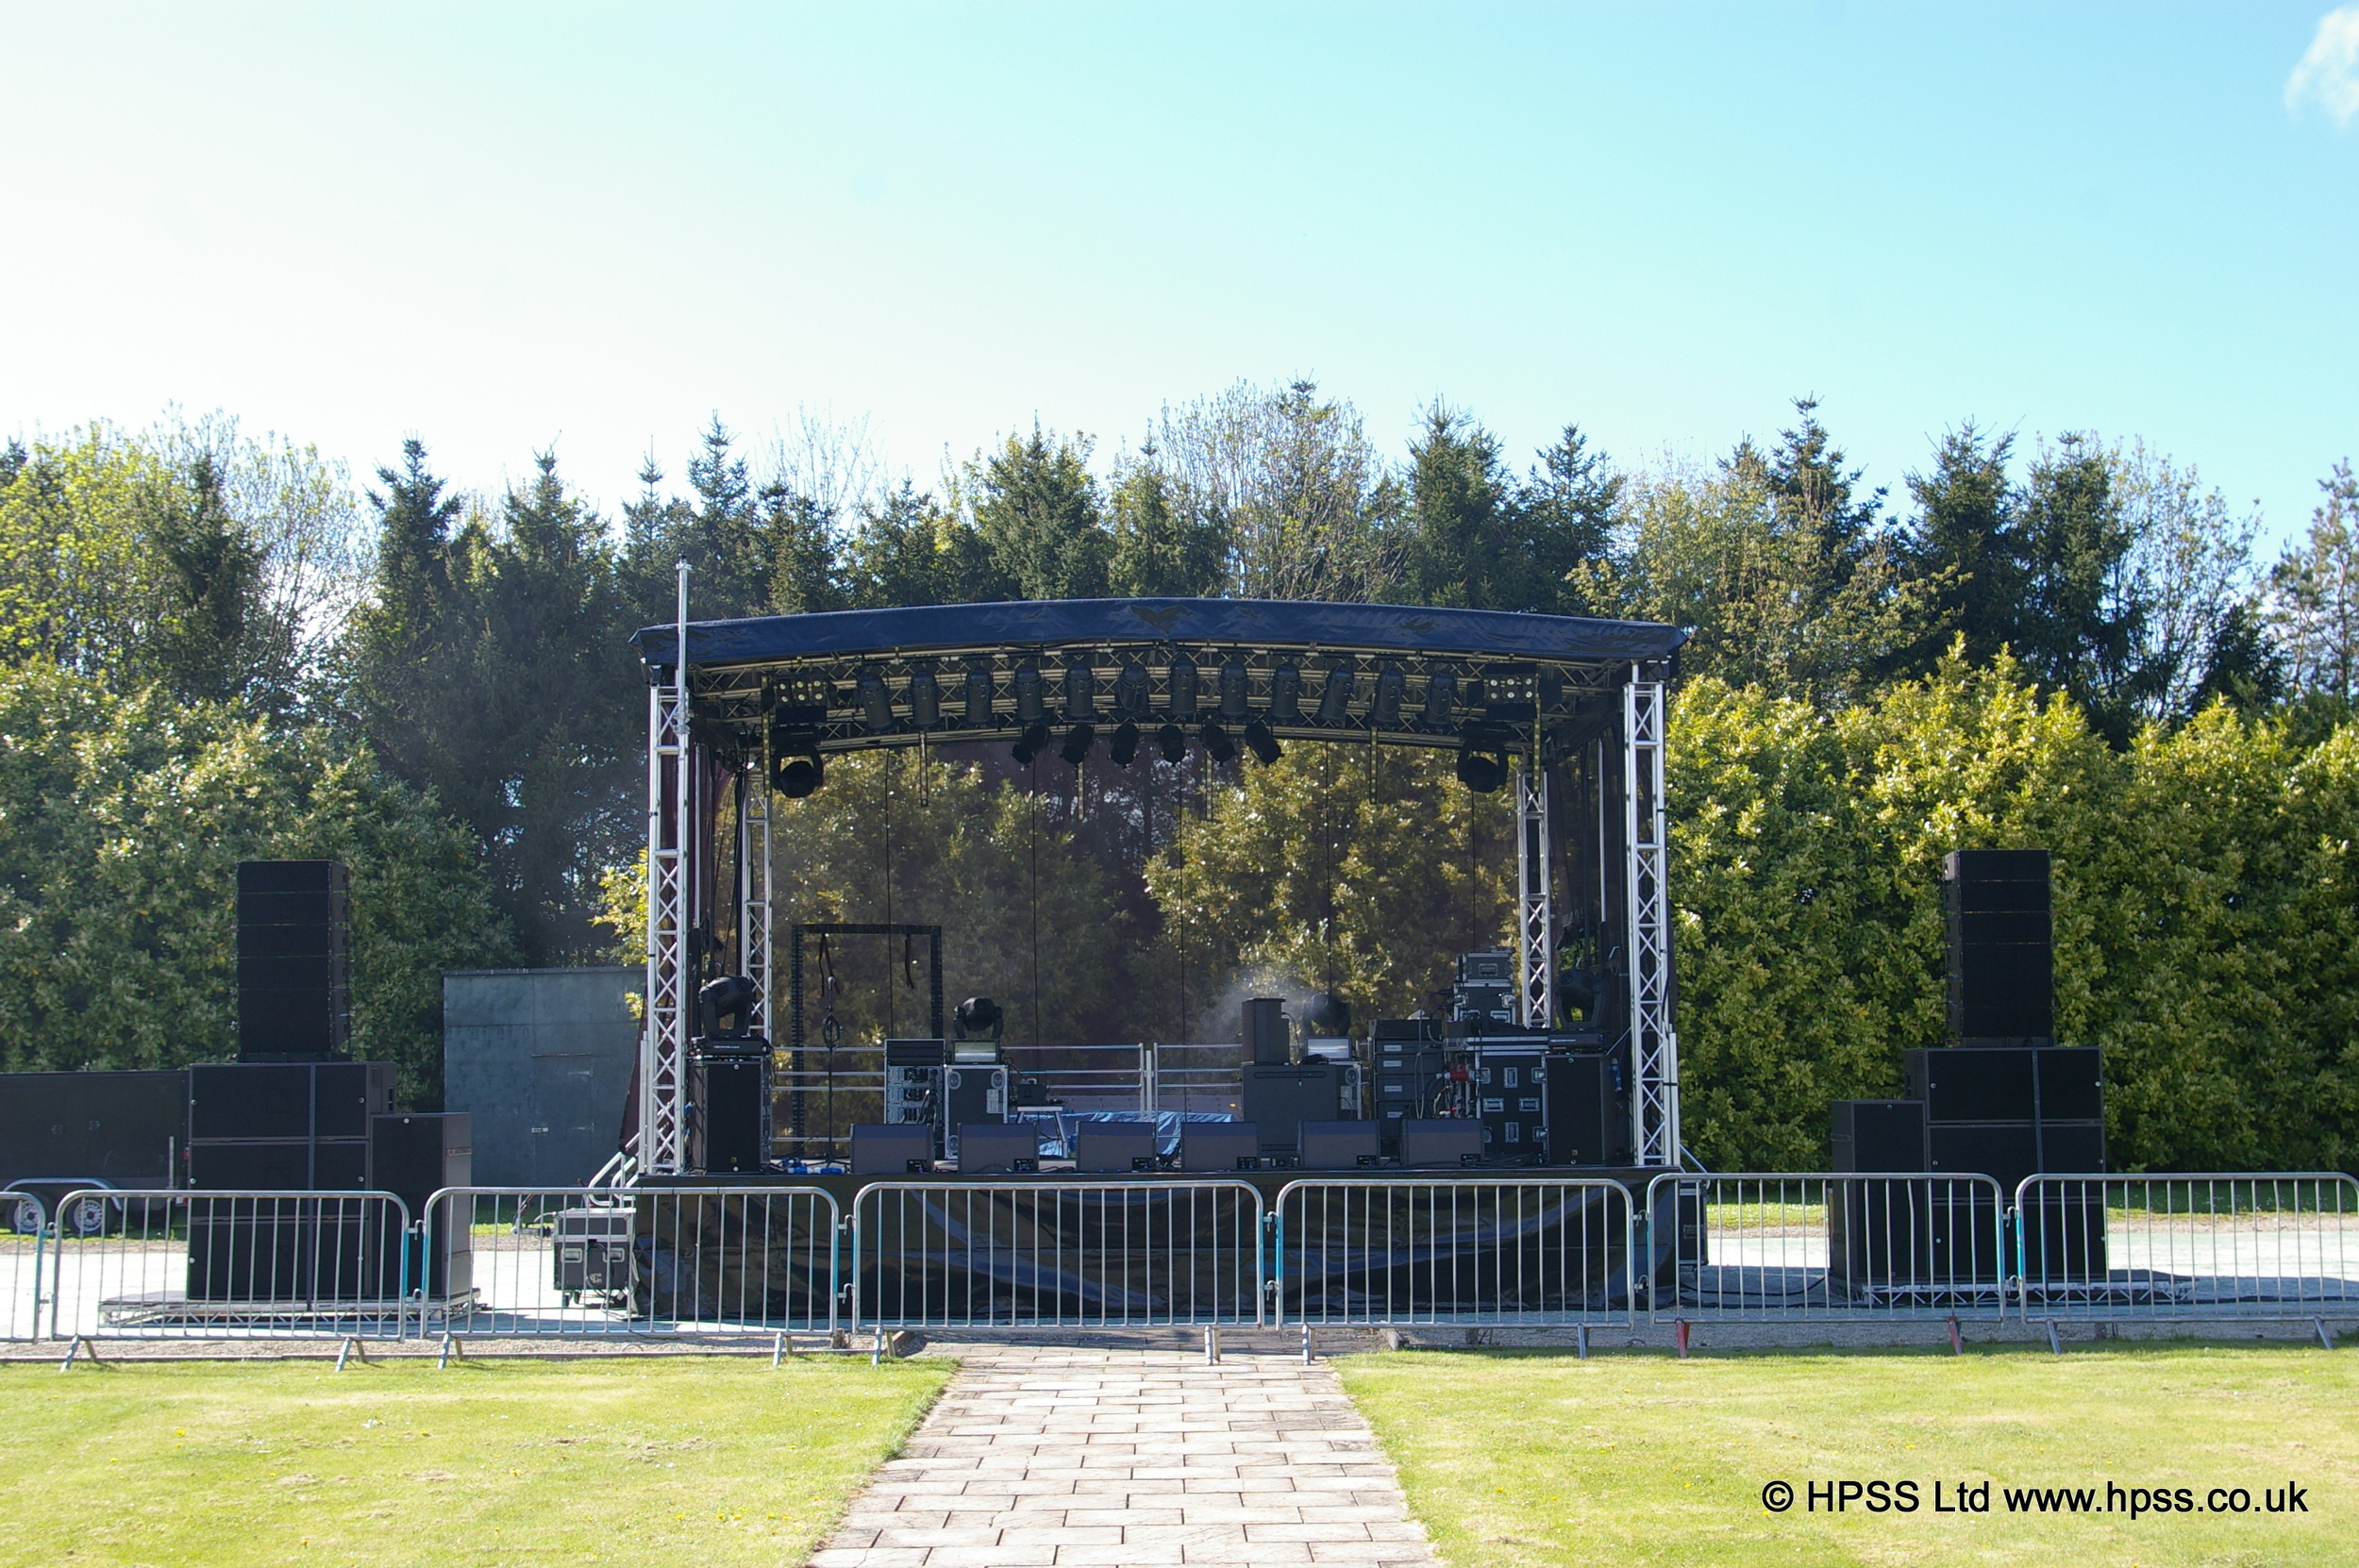 Stage with PA system and lights